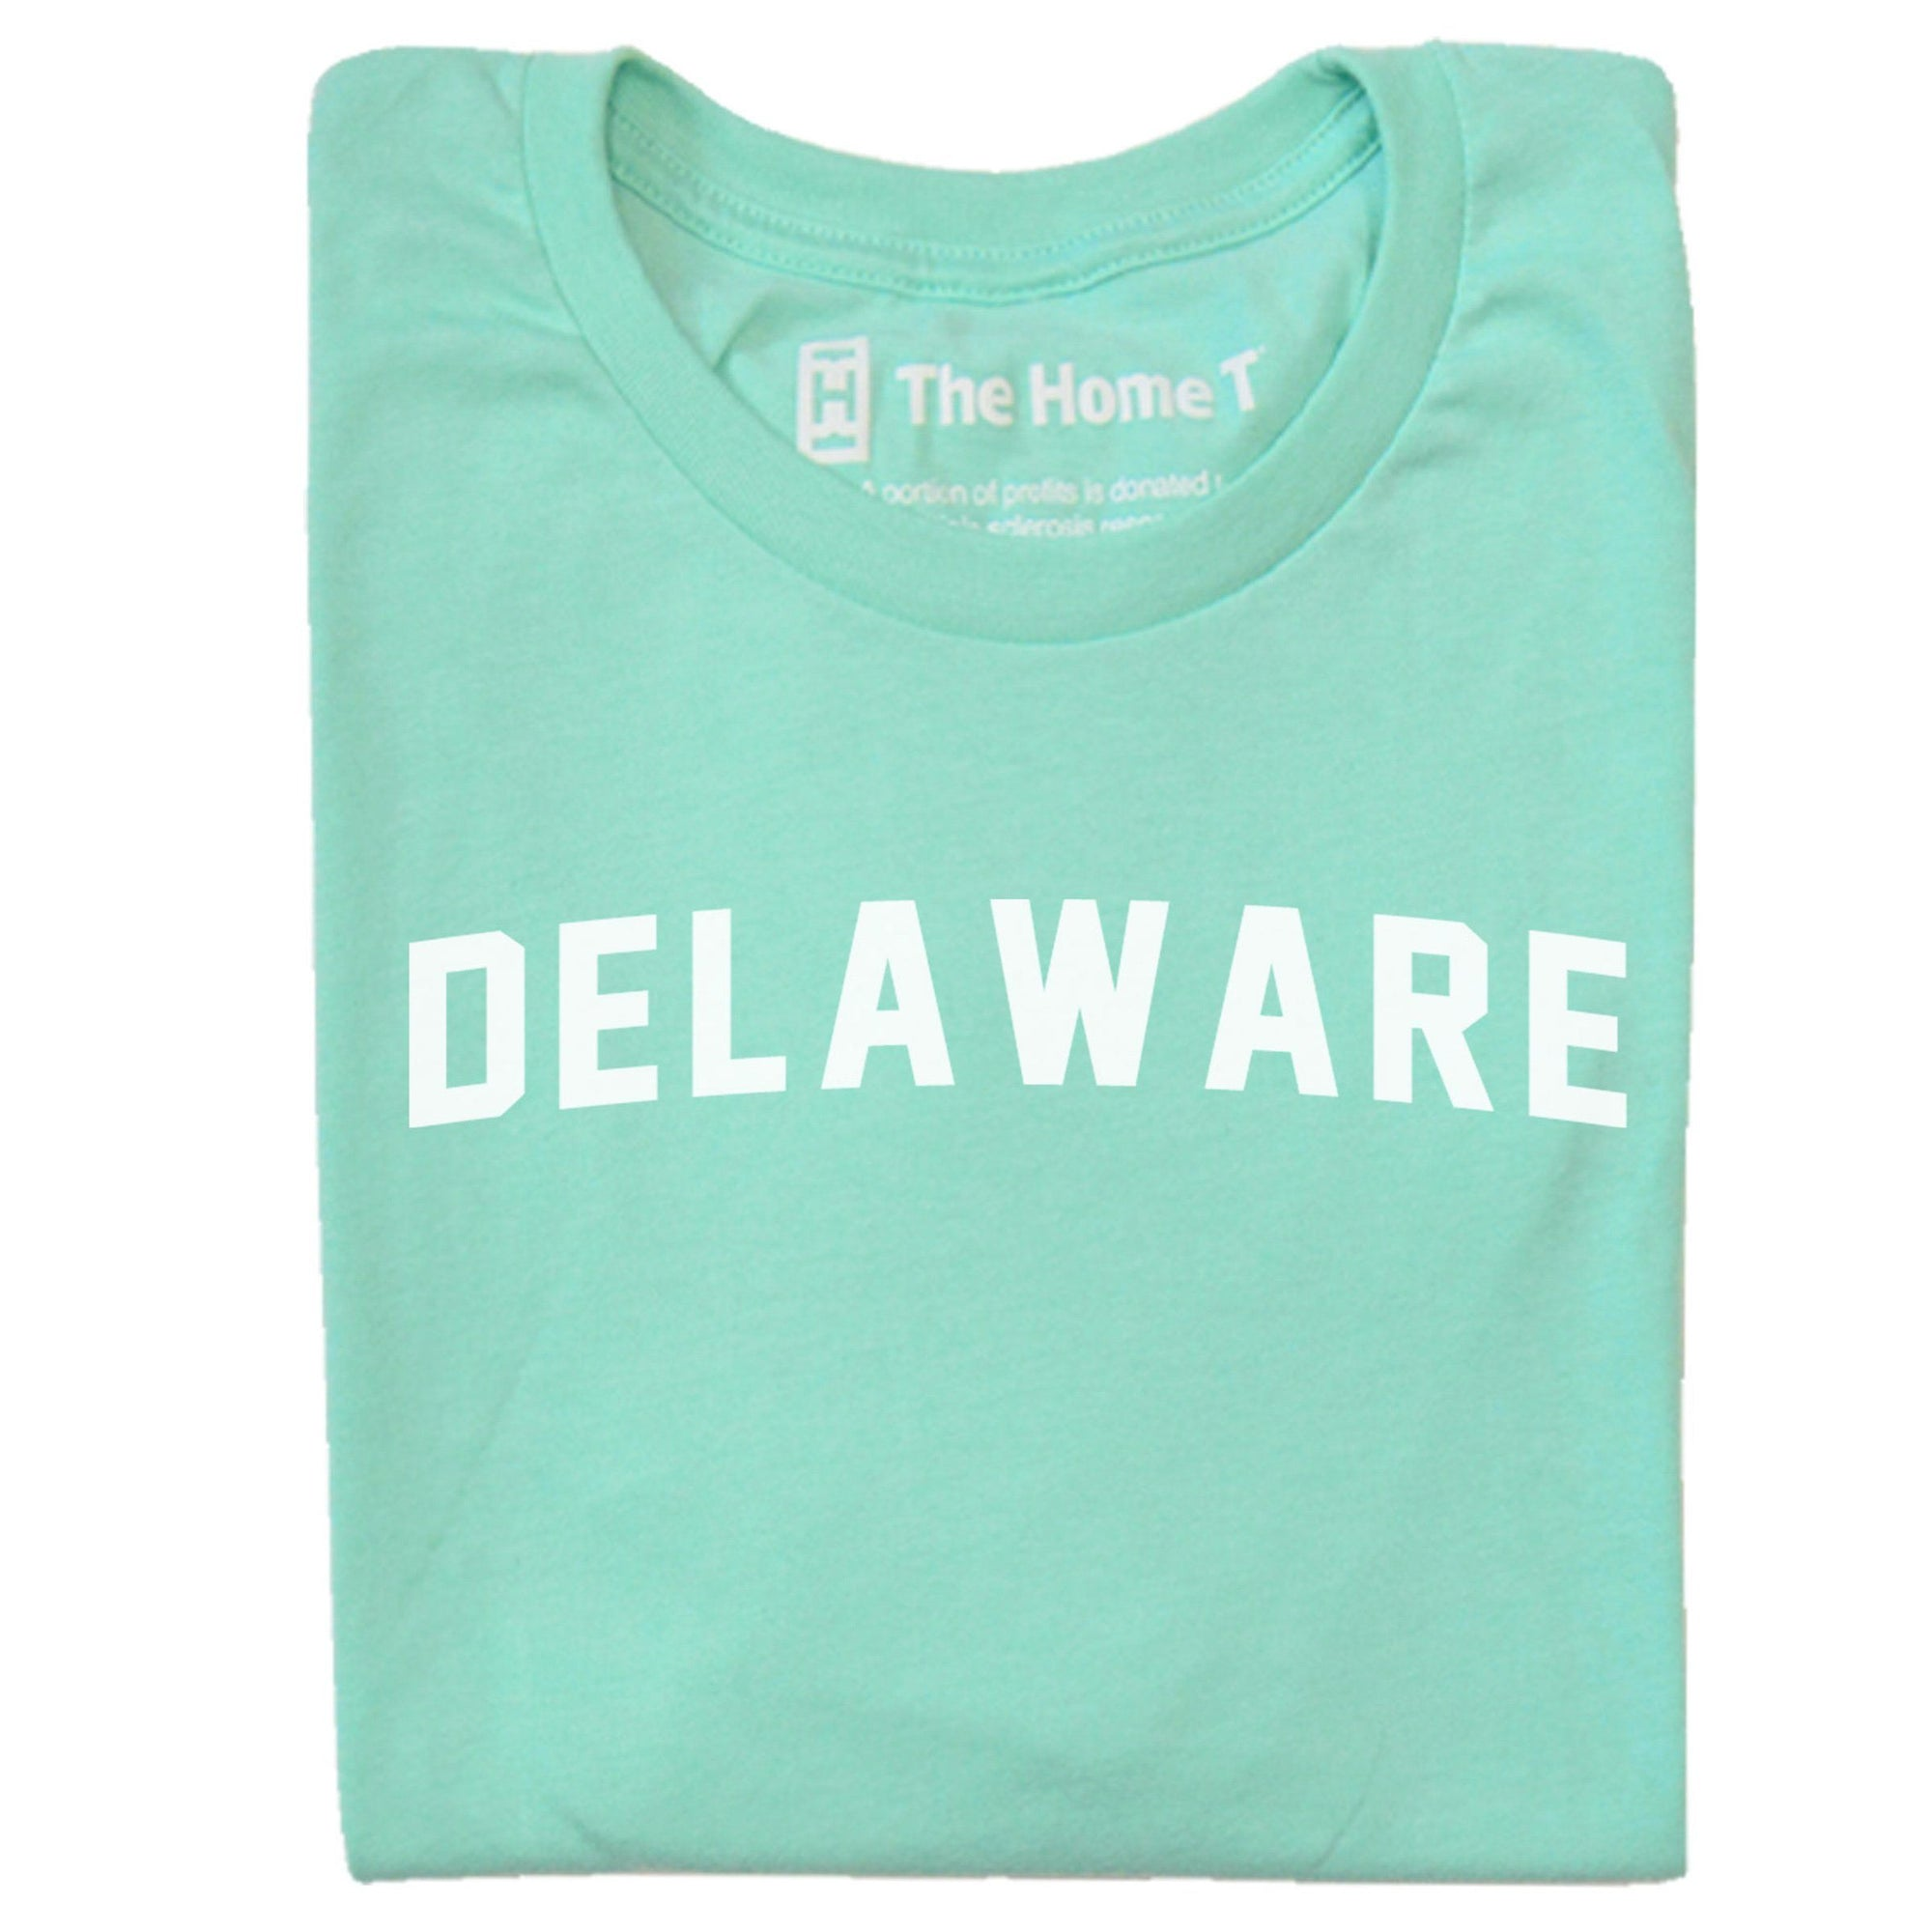 Delaware Arched The Home T XS Mint